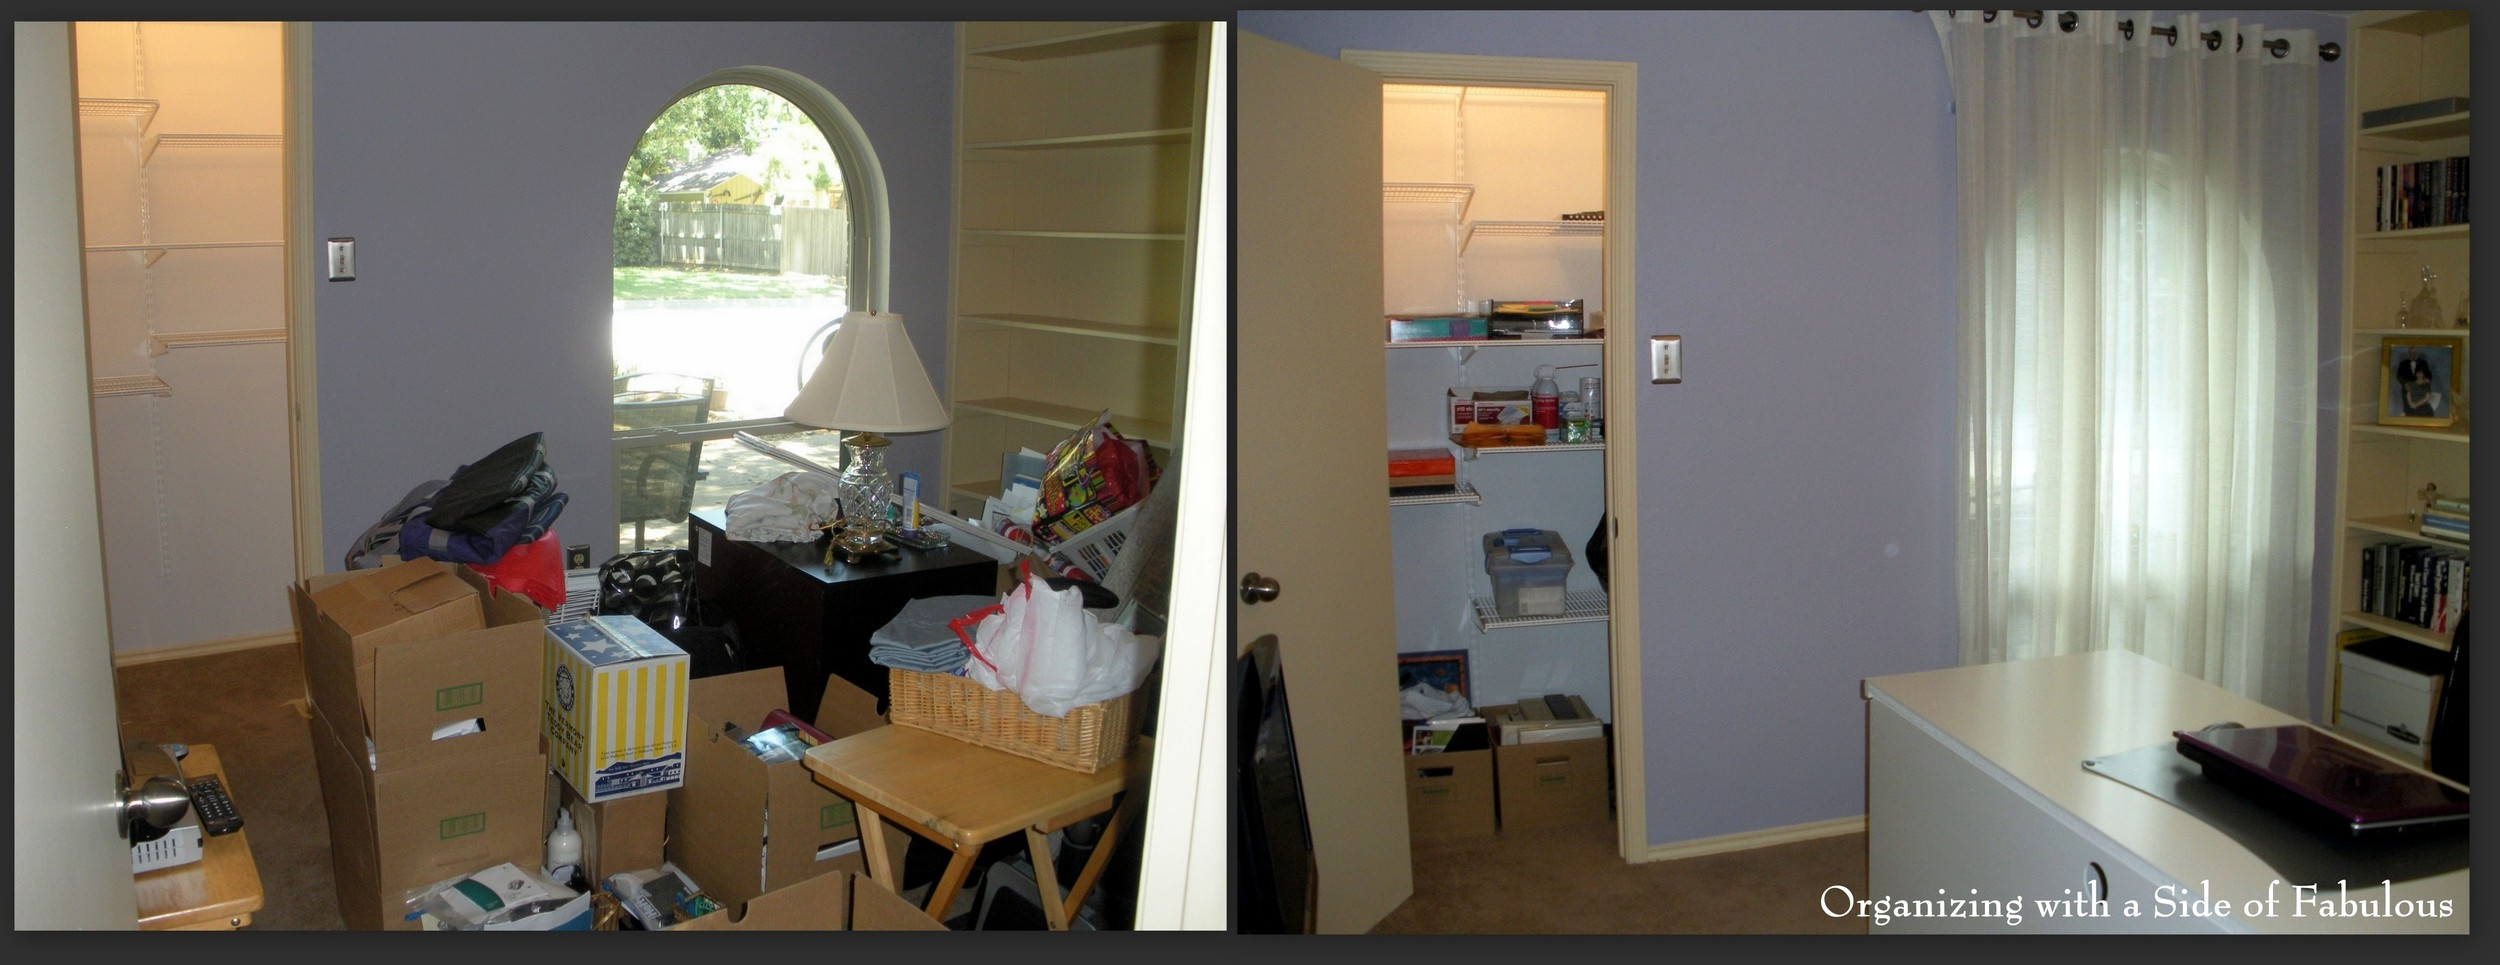 Junk Room to Home Office 2 - Organizing with a Side of Fabulous Blog